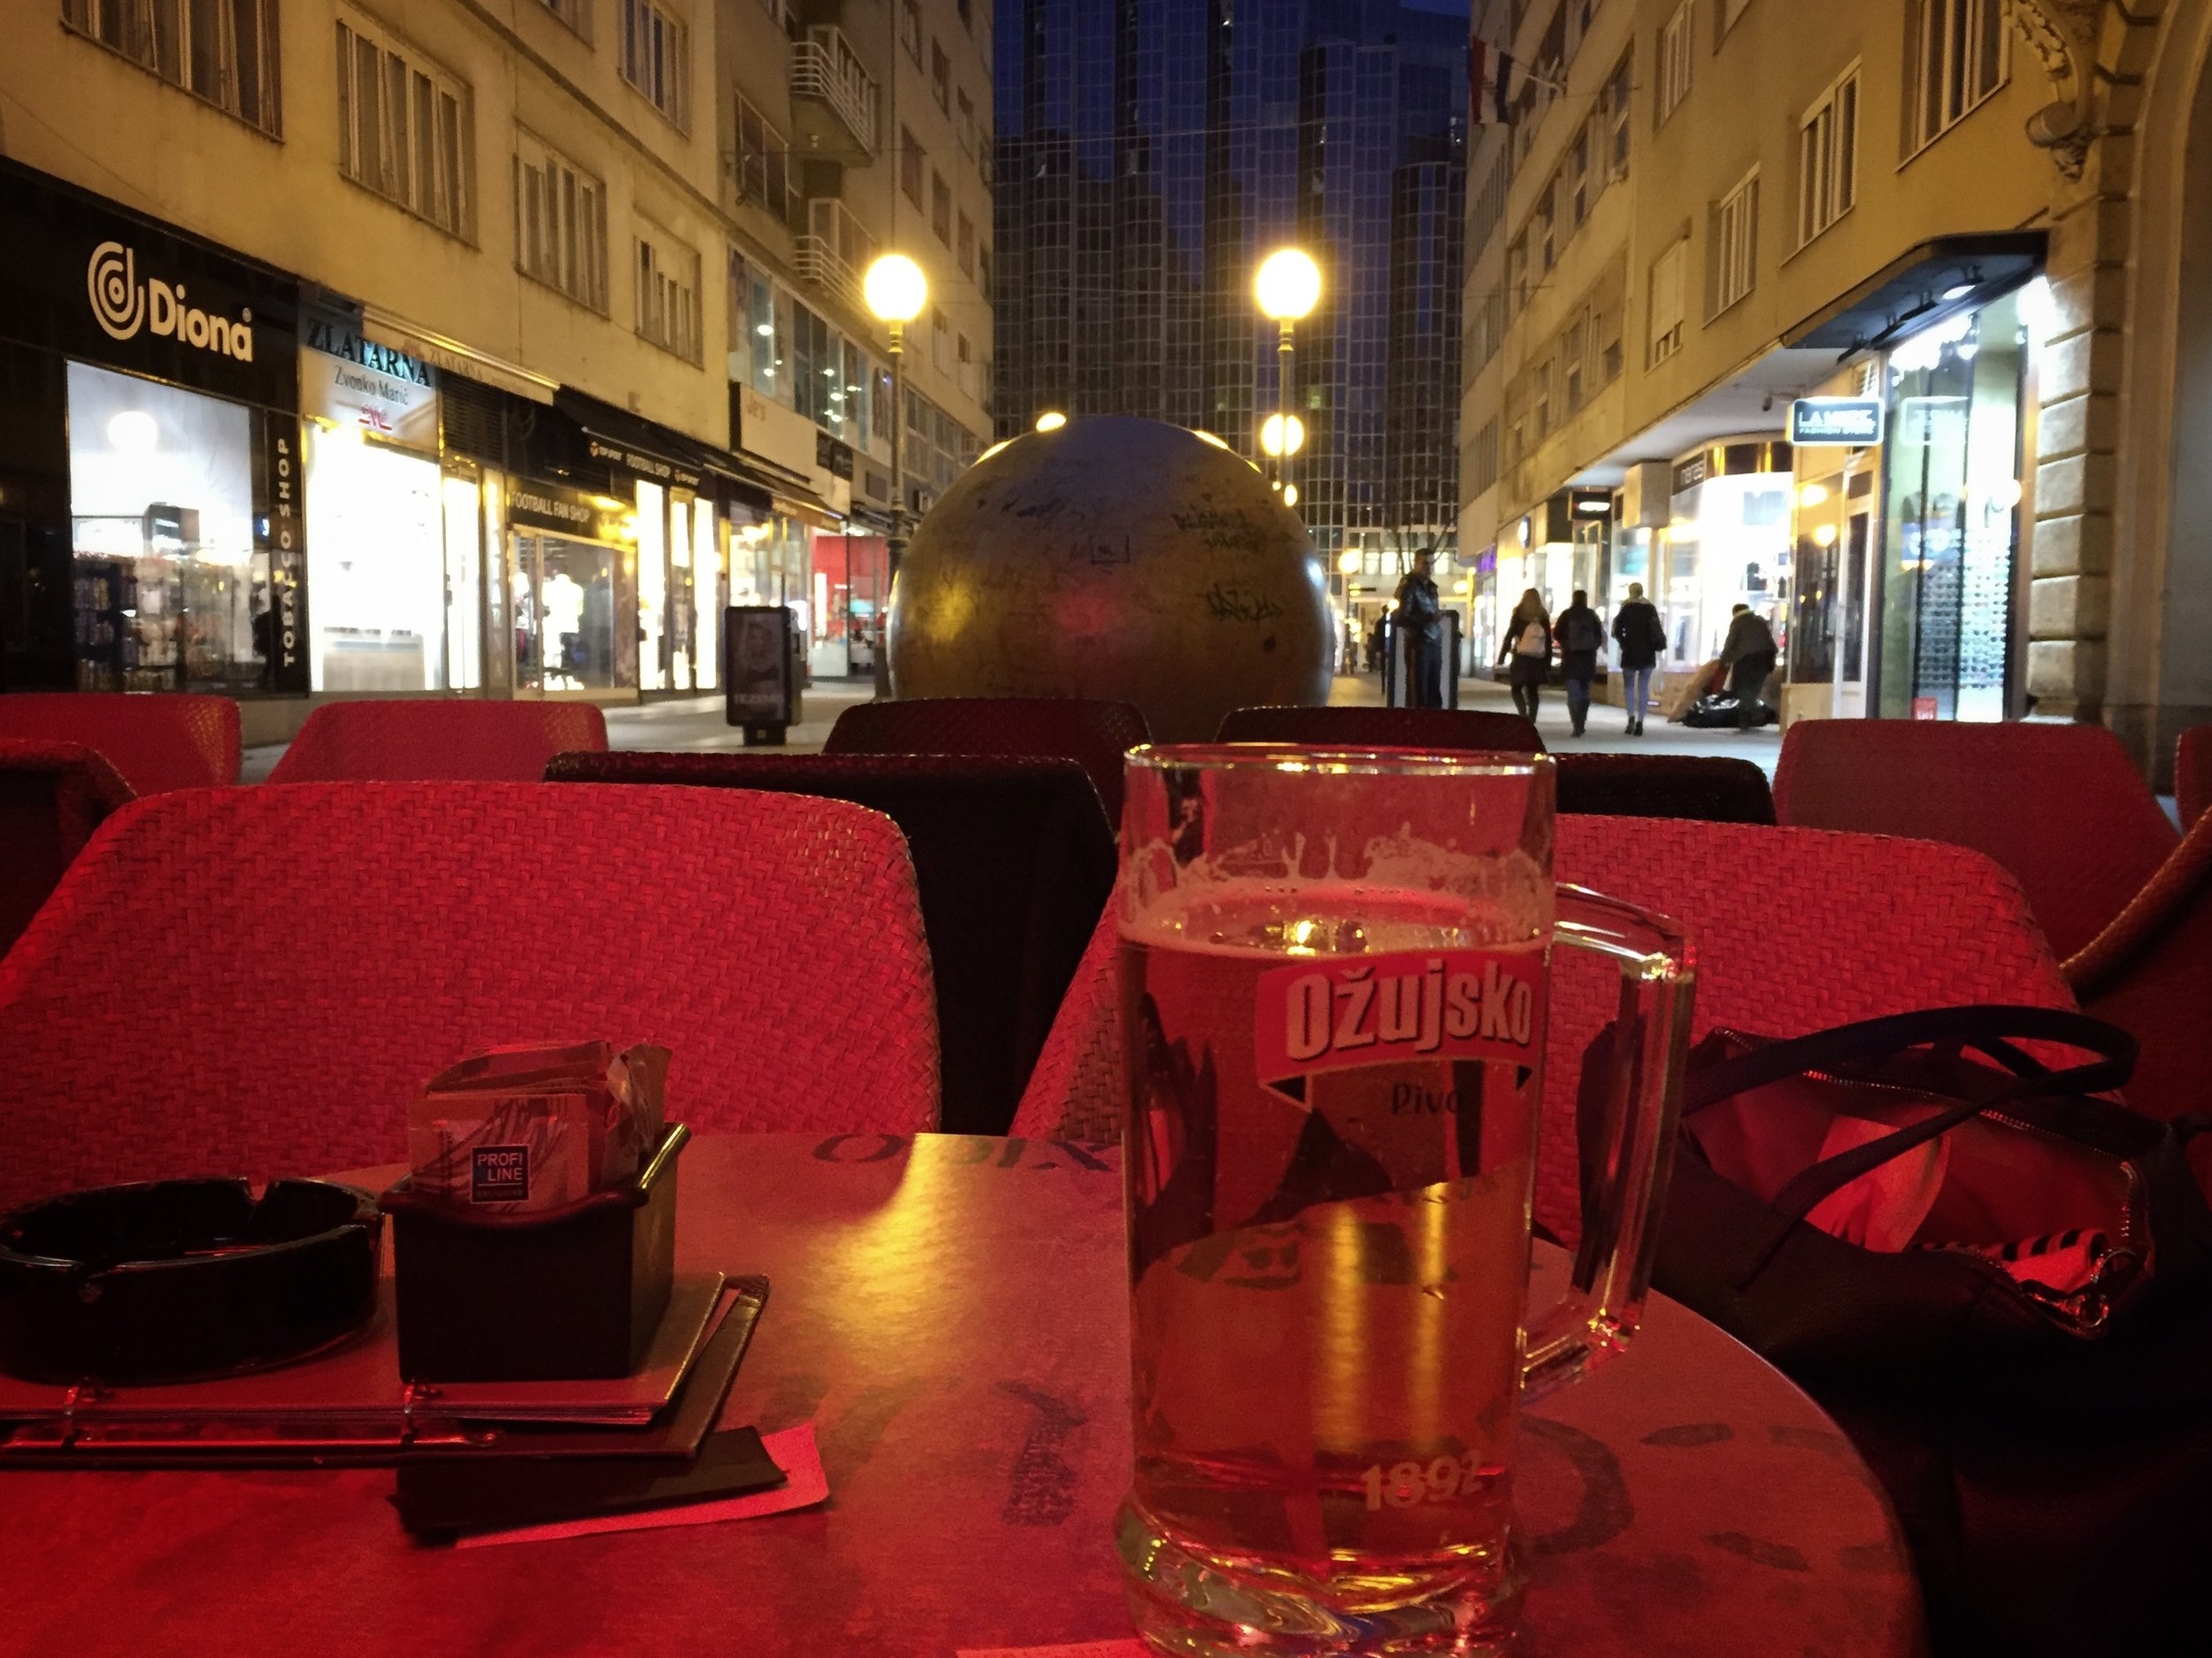 beer & people watching (Zagreb)